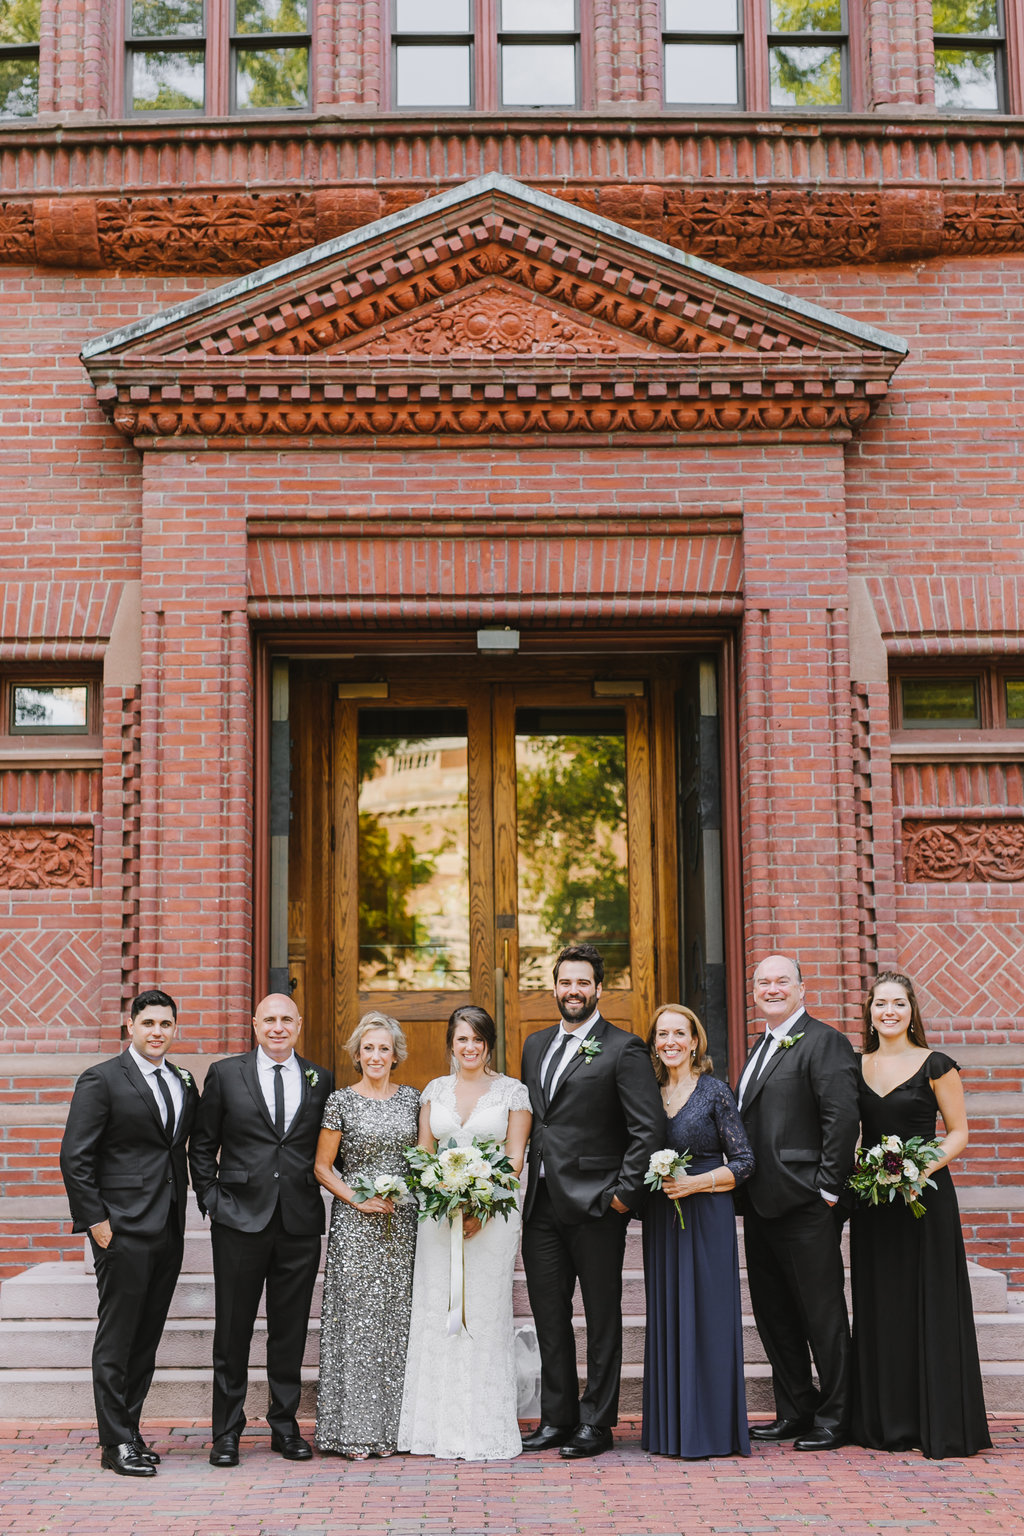 MaryBeth+EthanWedding-EmilyTebbettsPhotography-320.jpg